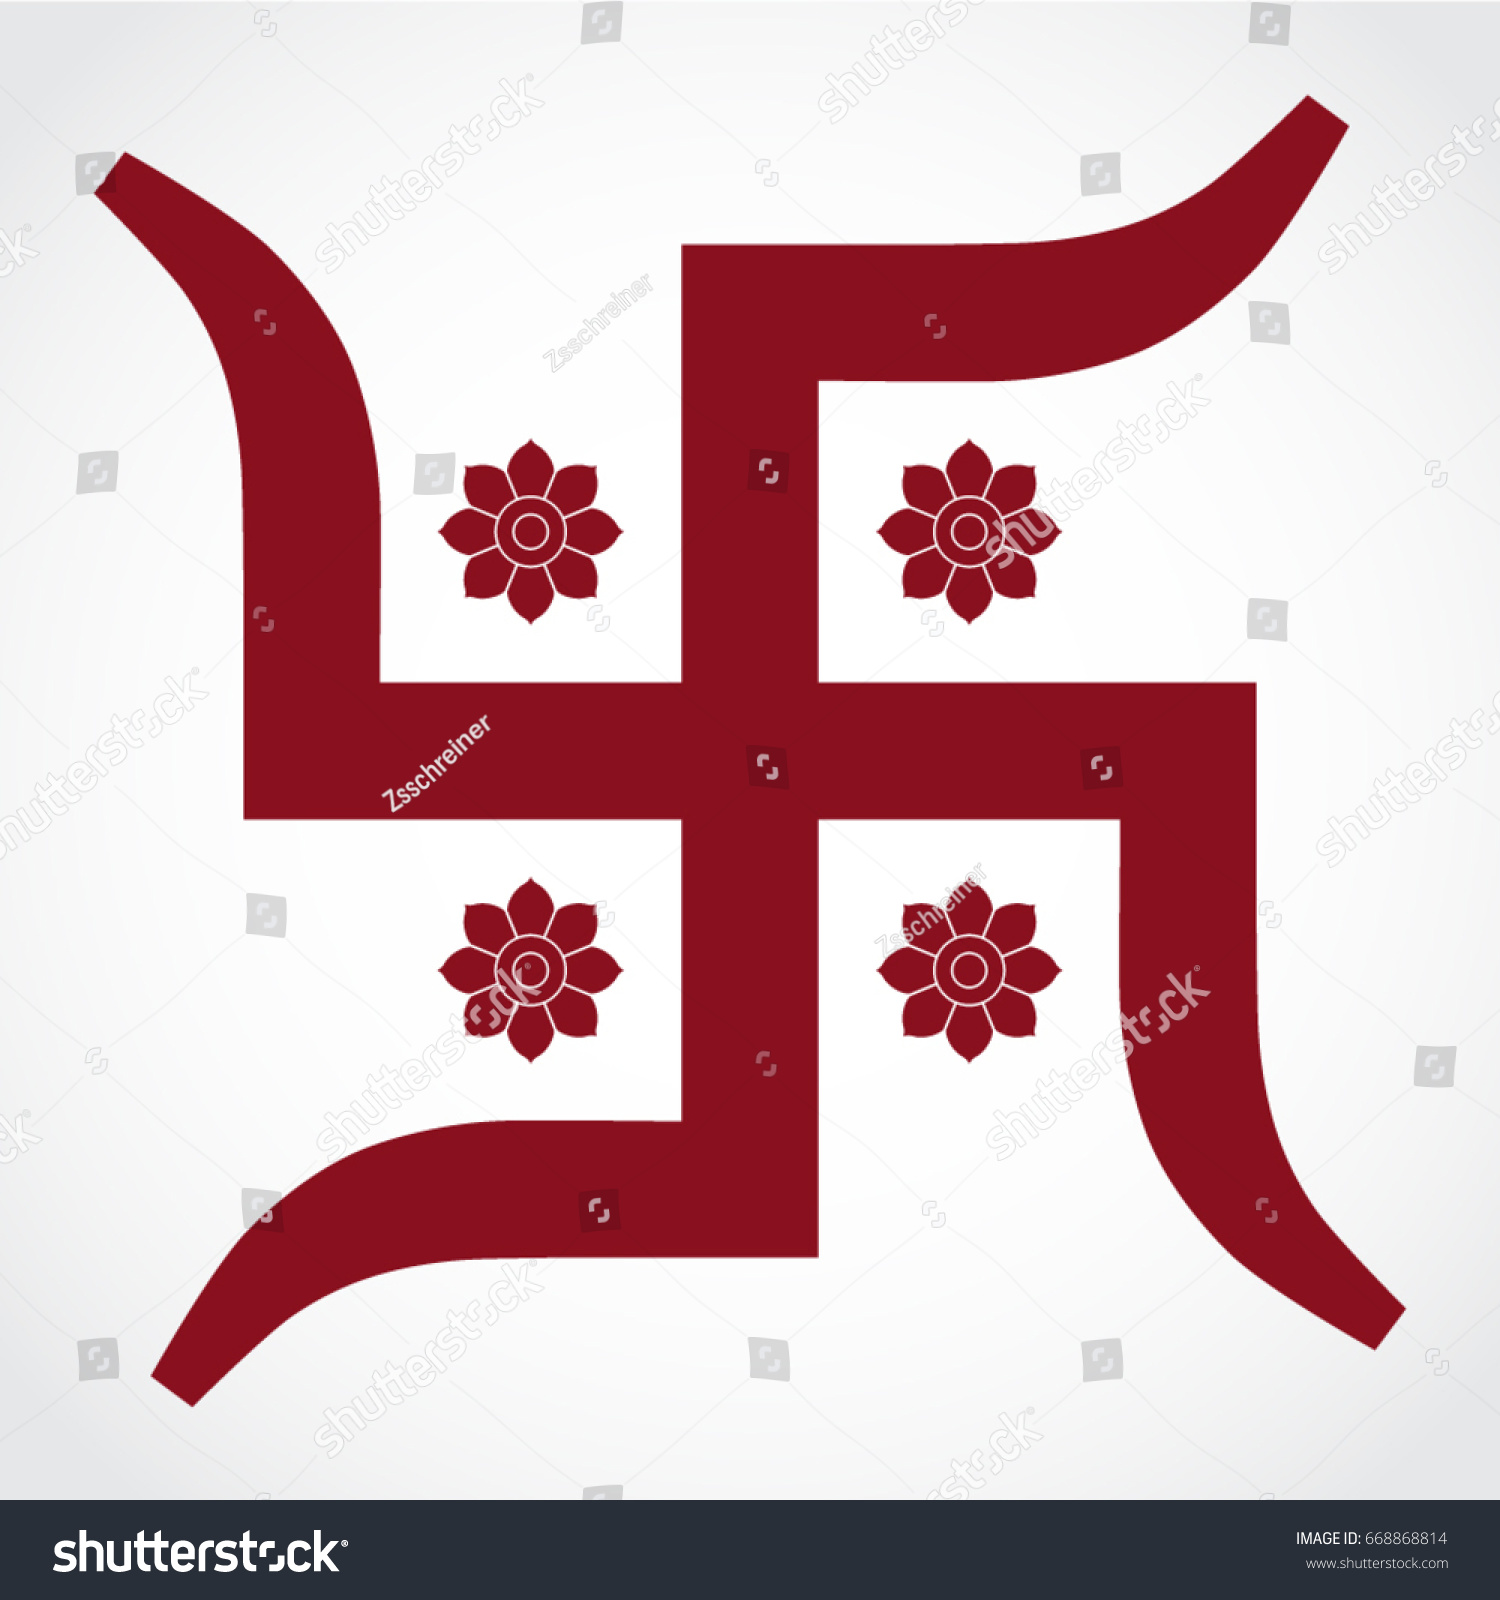 Hindu swastika religious symbol stock vector 668868814 shutterstock hindu swastika religious symbol buycottarizona Image collections